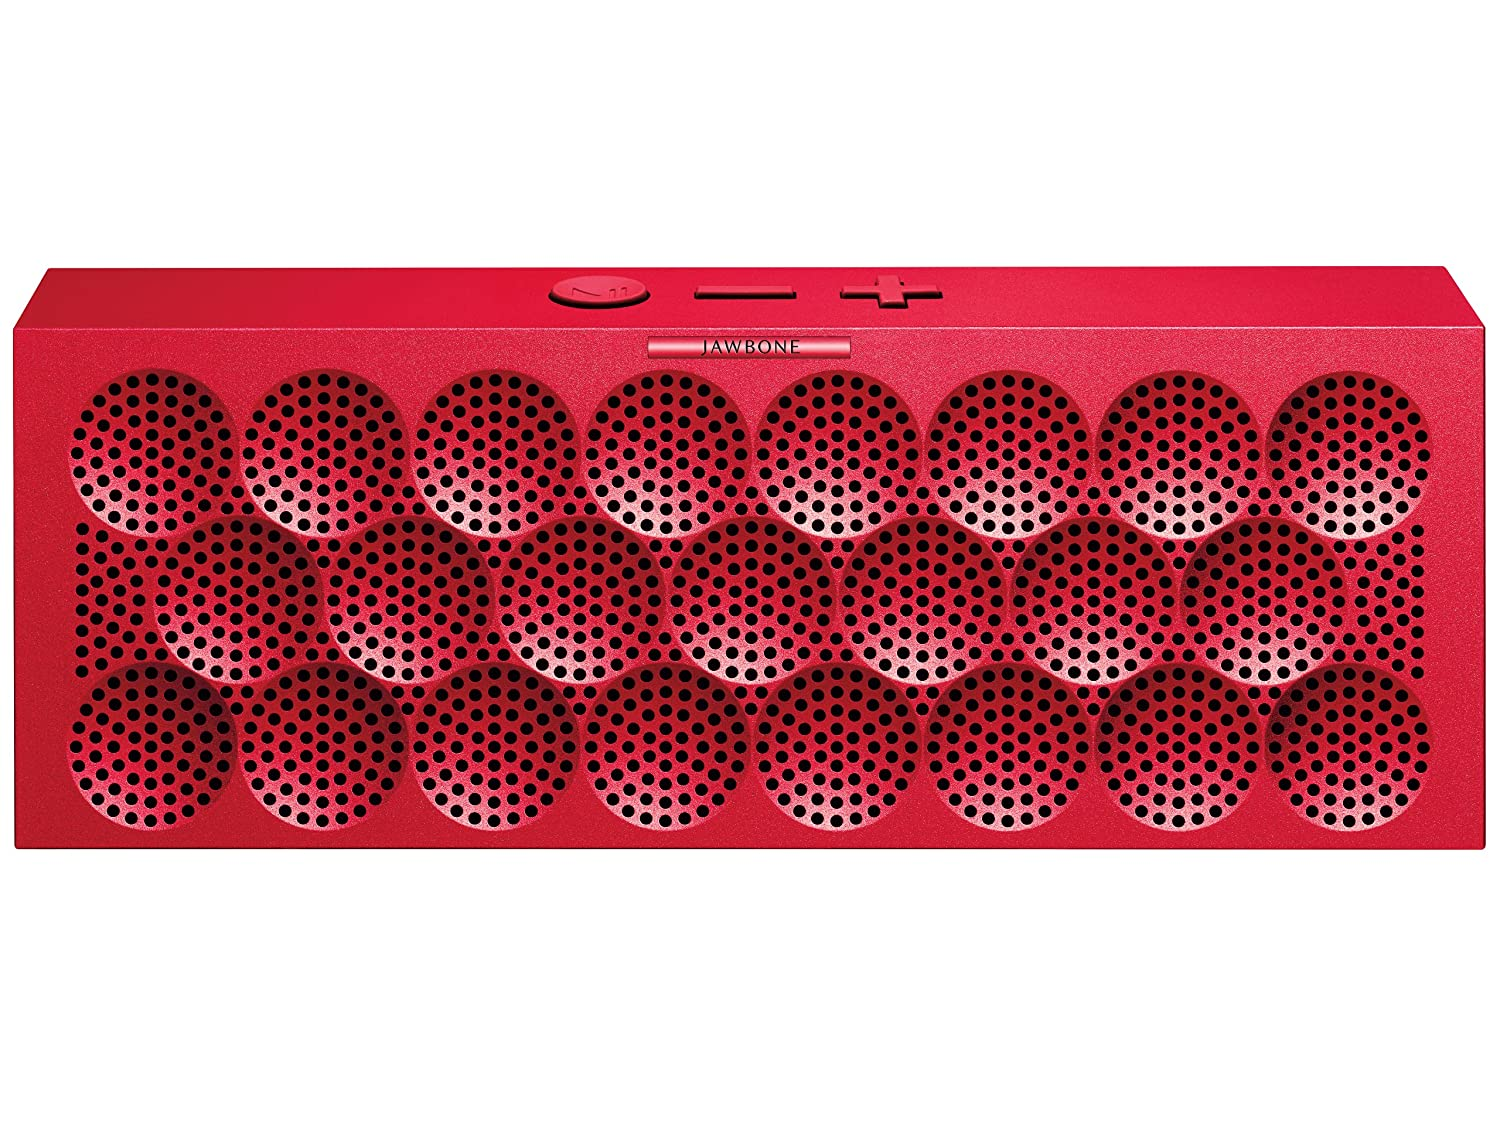 jawbone best bluetooth speakers under 100